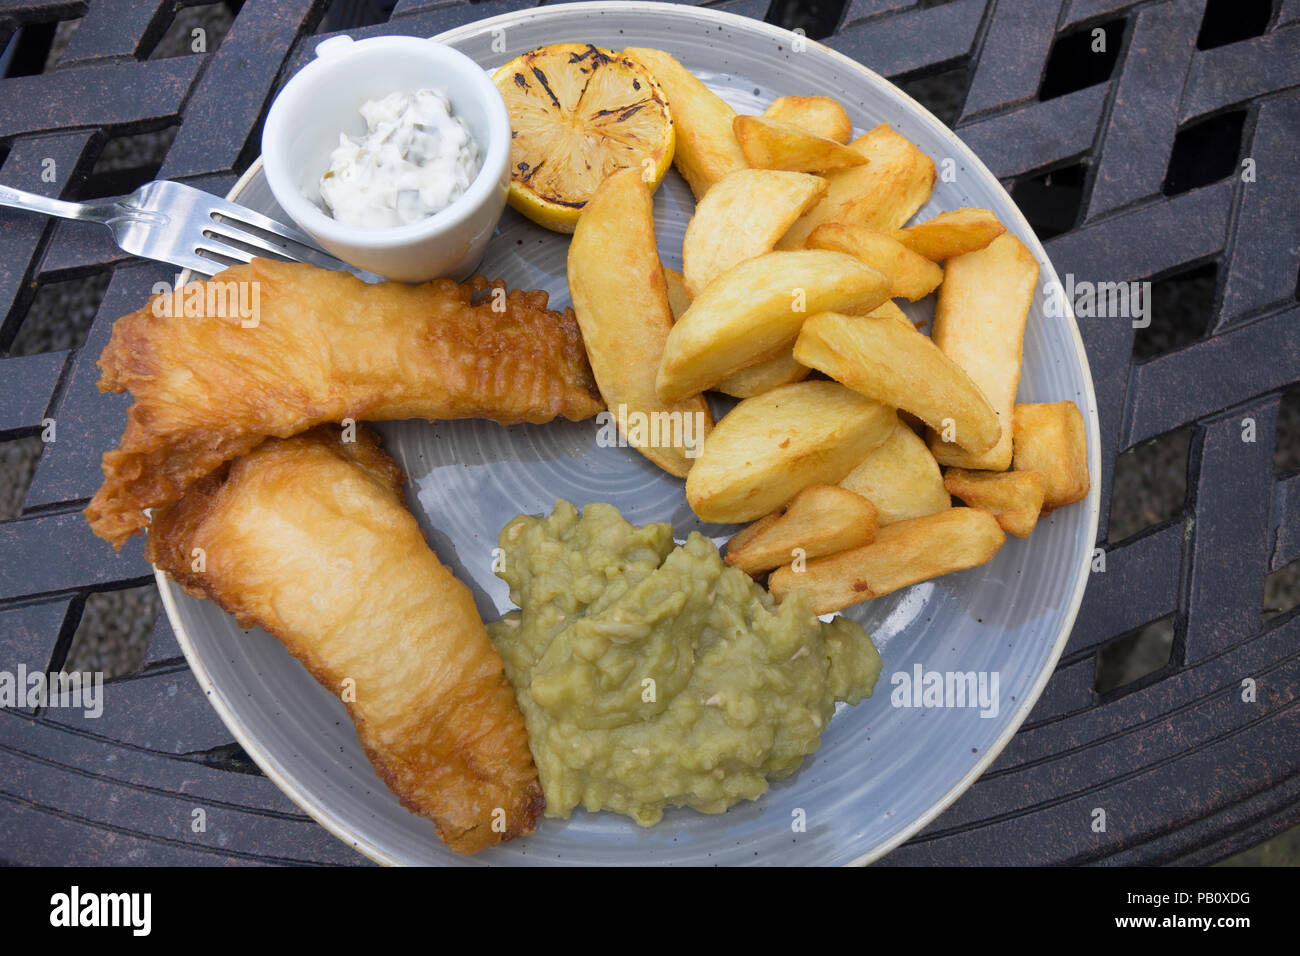 Hotel Lunch fish of the day two battered lemon sole fillets with chunky chipped potatoes mushy peas and tartare sauce Stock Photo